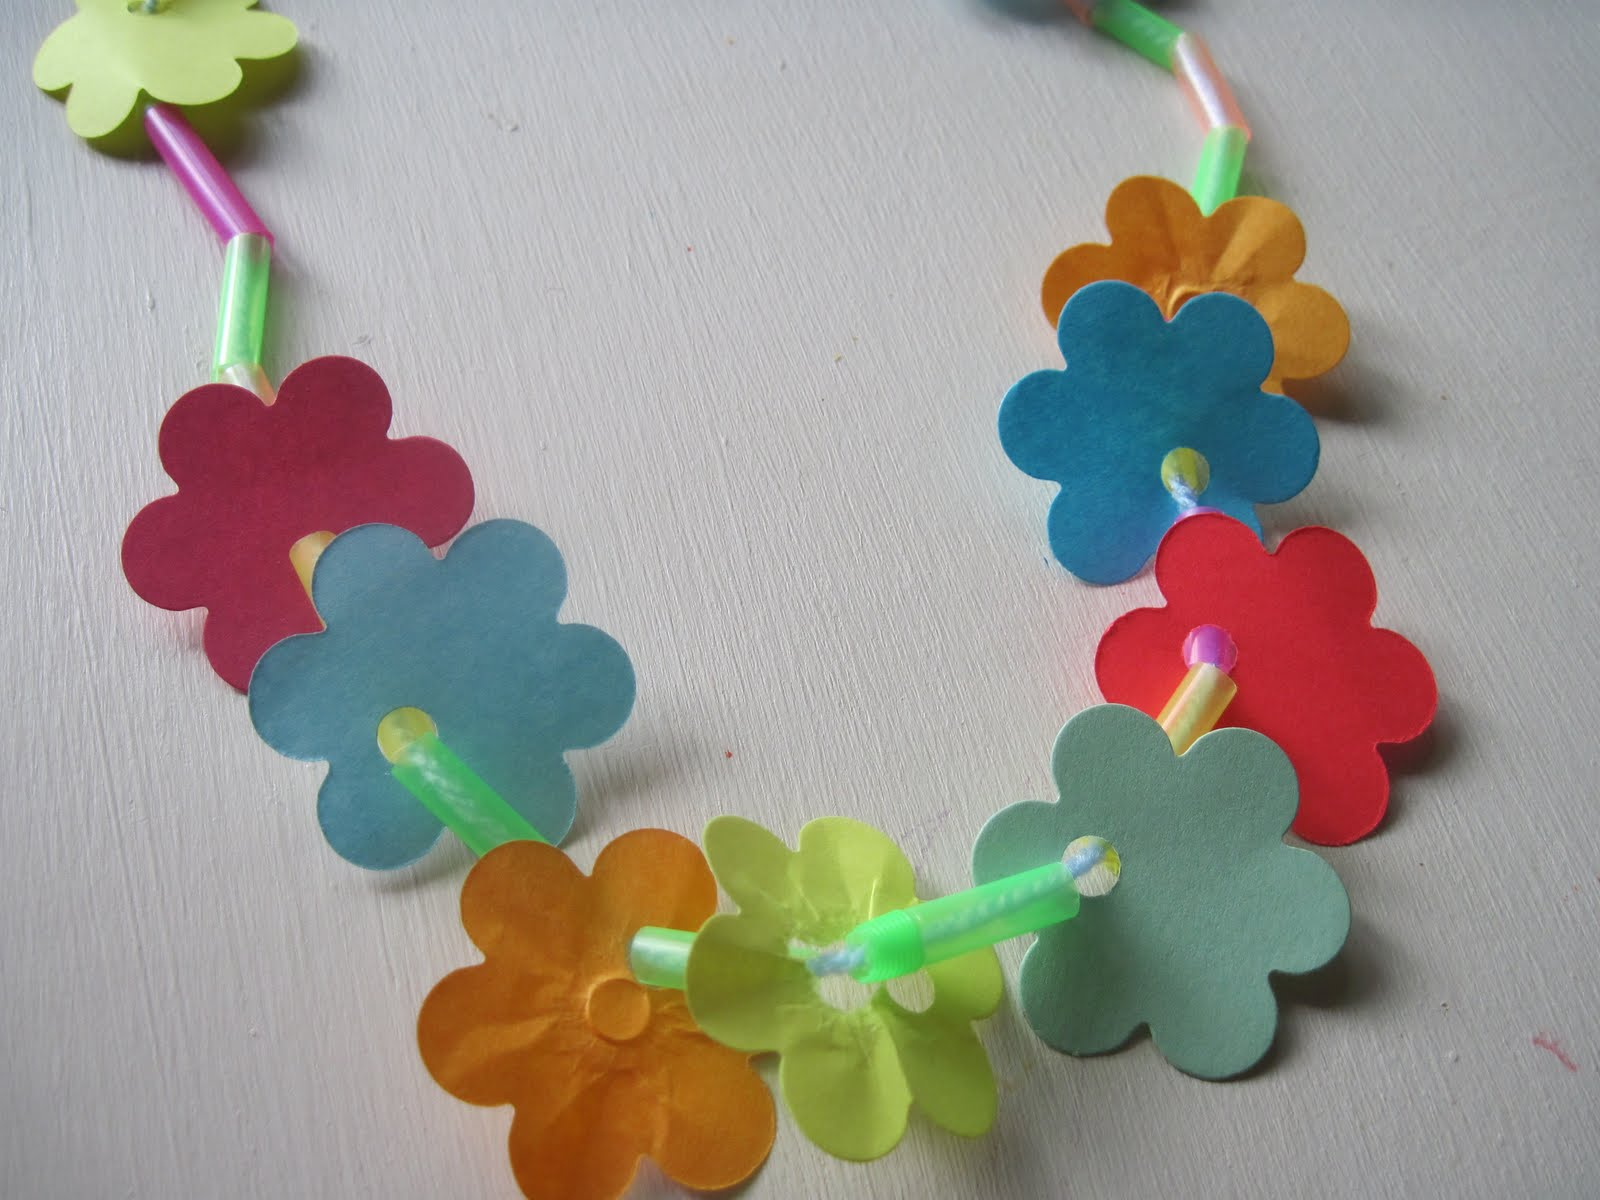 Kids matter hawaii craft paper flowers or artificial flowers with a hole punched in them straws that are cut into 2 3 pieces izmirmasajfo